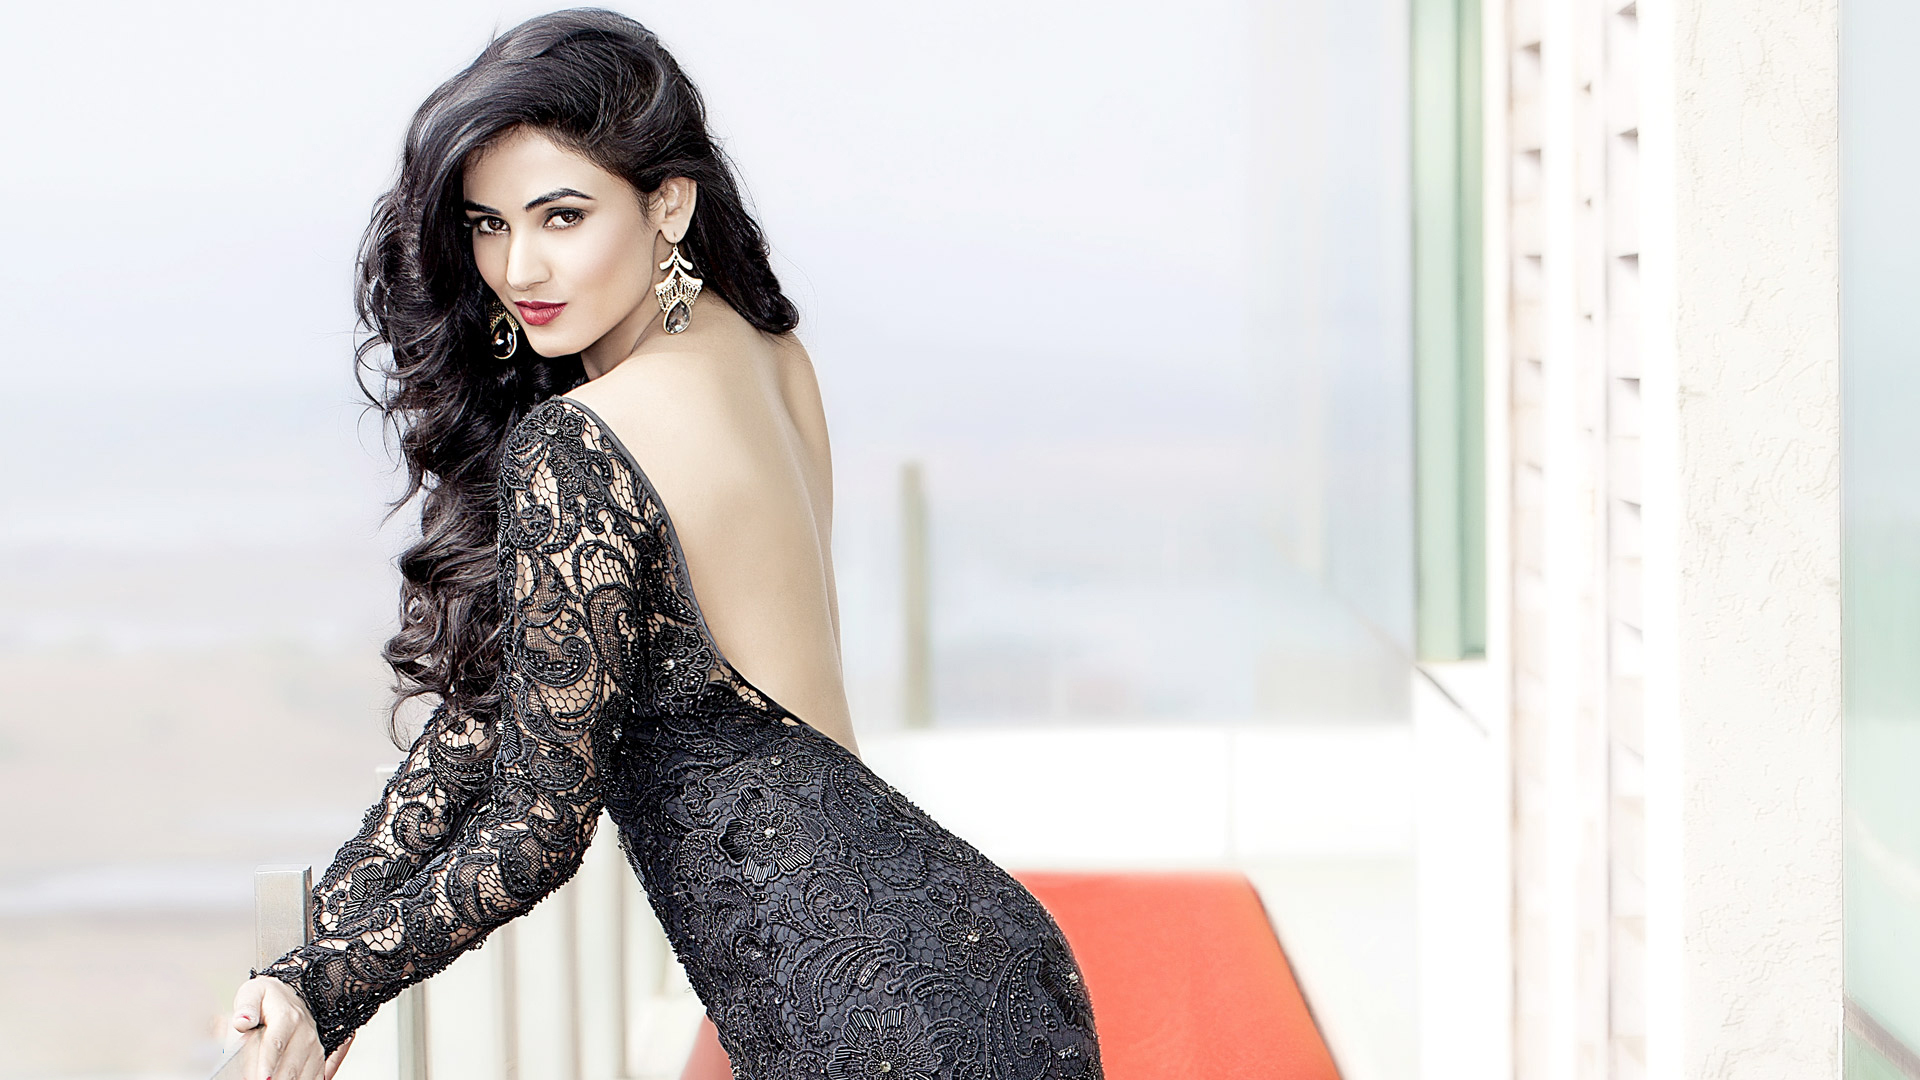 Girl Punjabi Suit Wallpaper Facebook Covers For Sonal Chauhan 13 24 Popopics Com